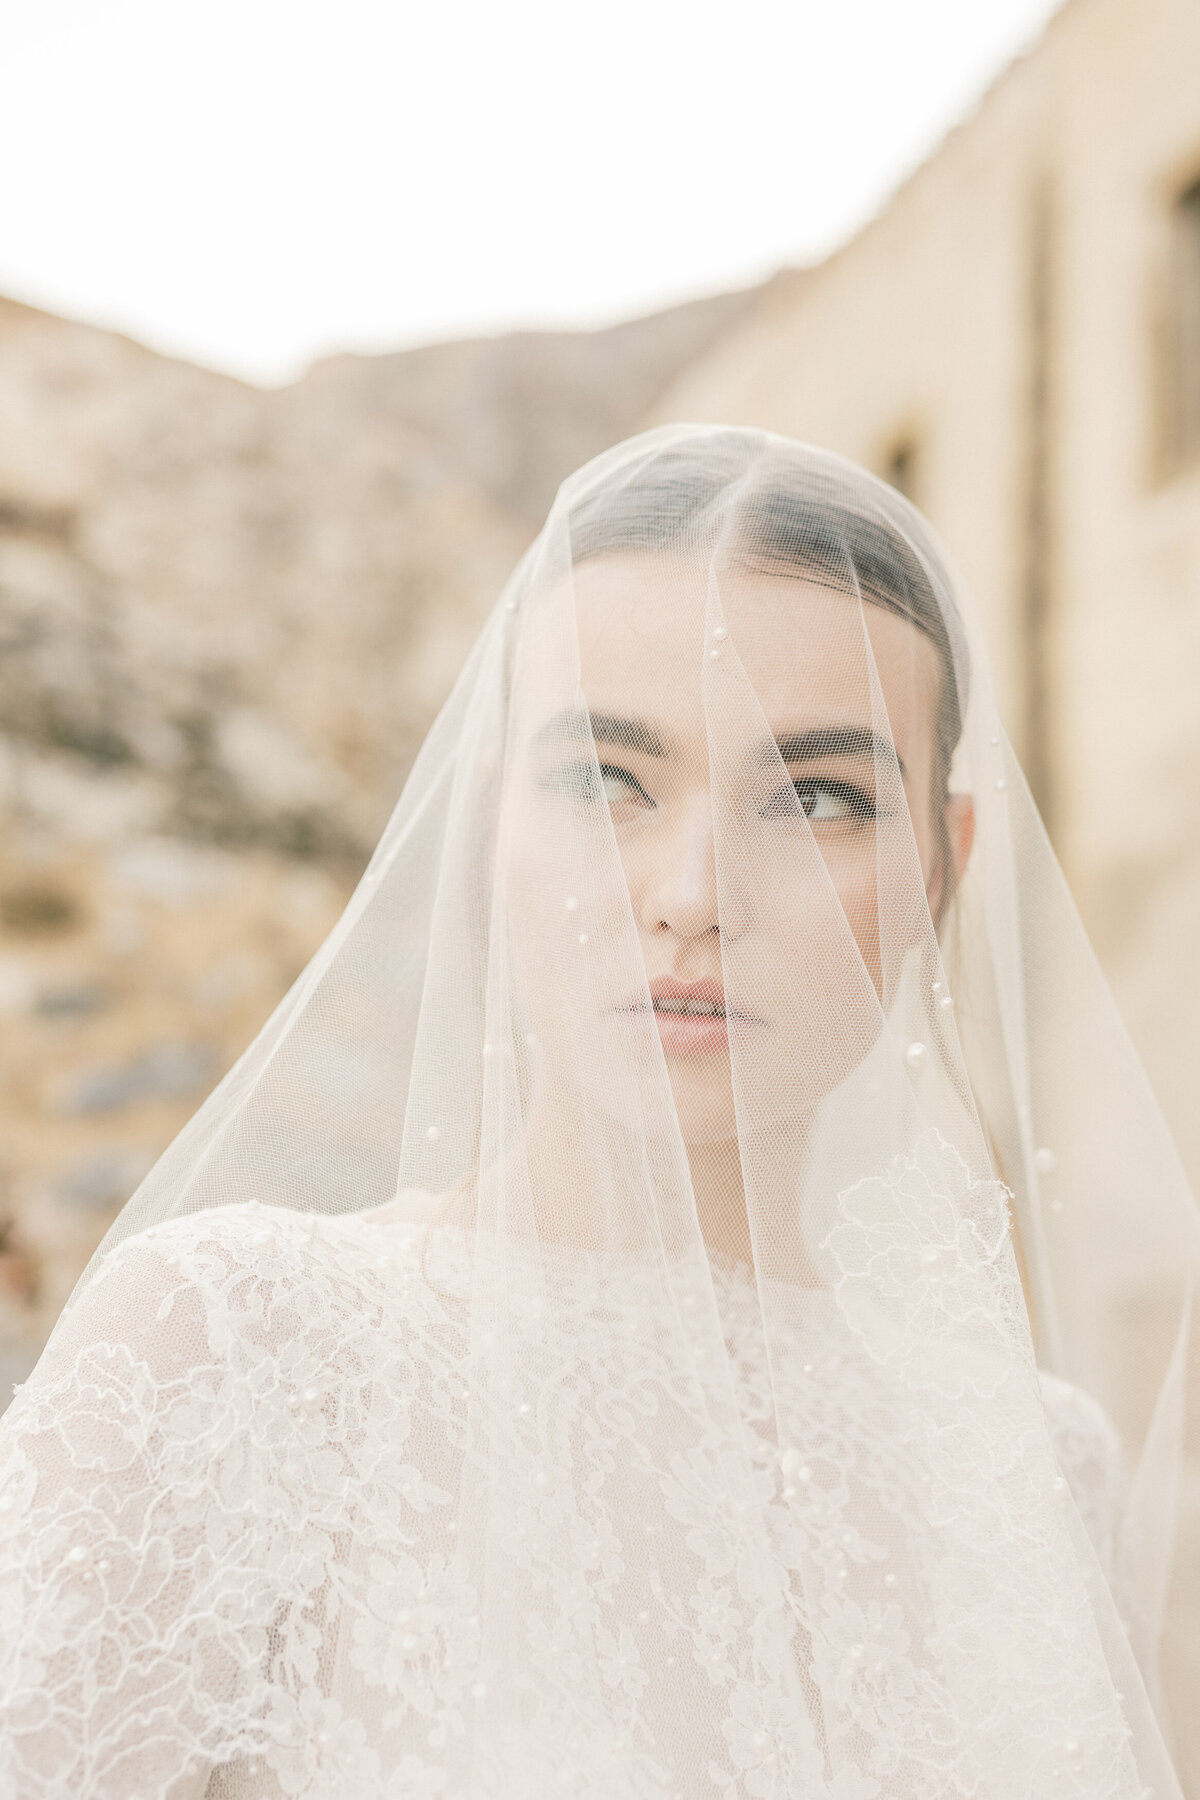 Bridal Portrait Editorial Photoshoot in Greece 6